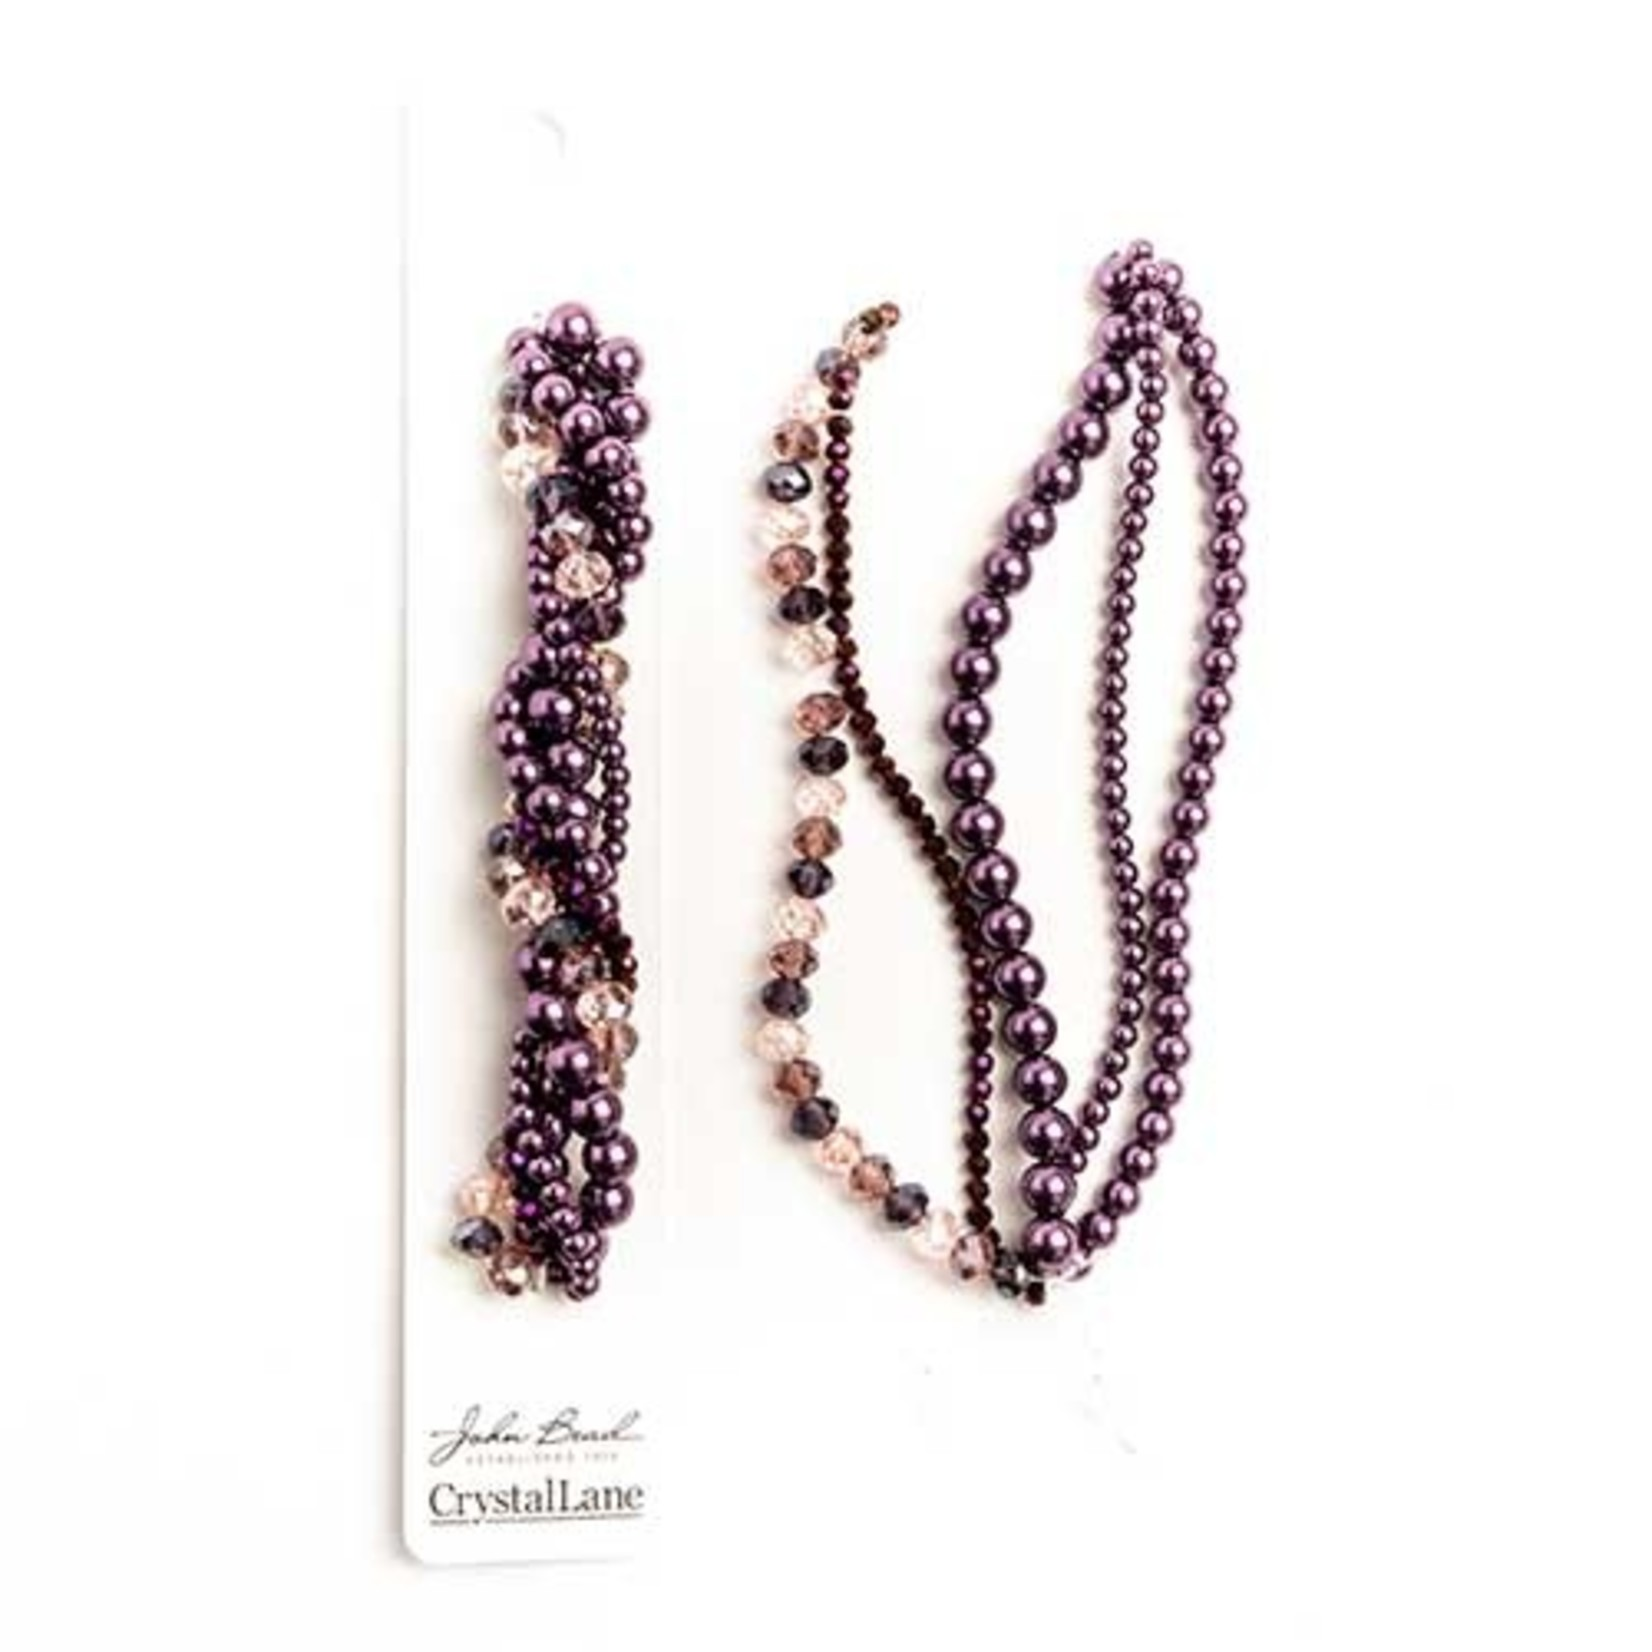 Crystal Lane Twisted Bead Strands Wisteria